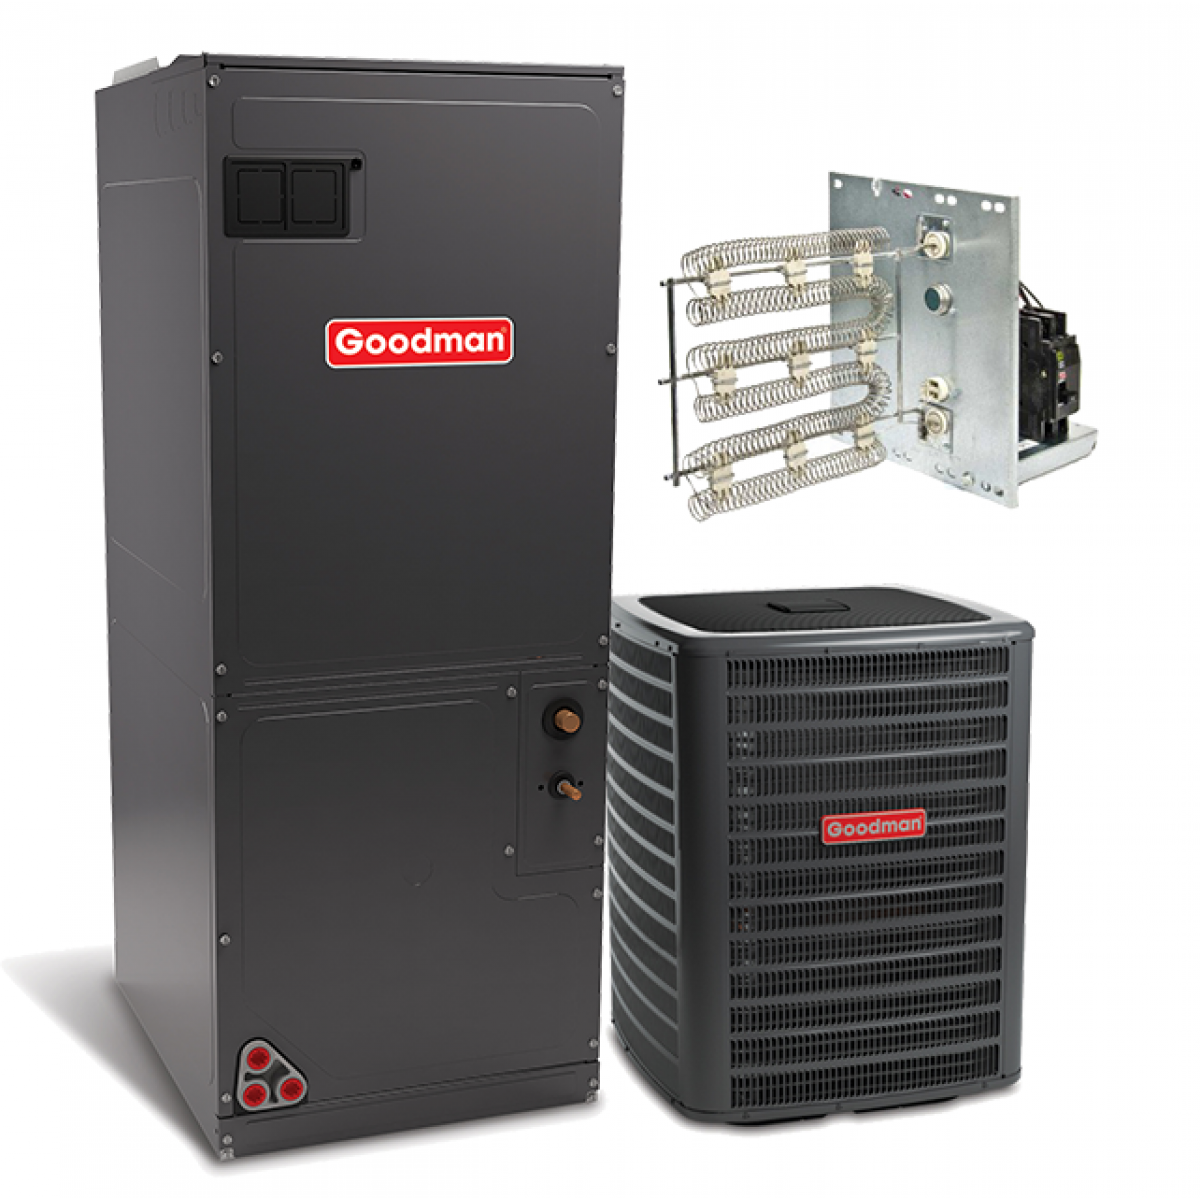 goodman 2.0 ton 16 seer r-410a air conditioning system with two